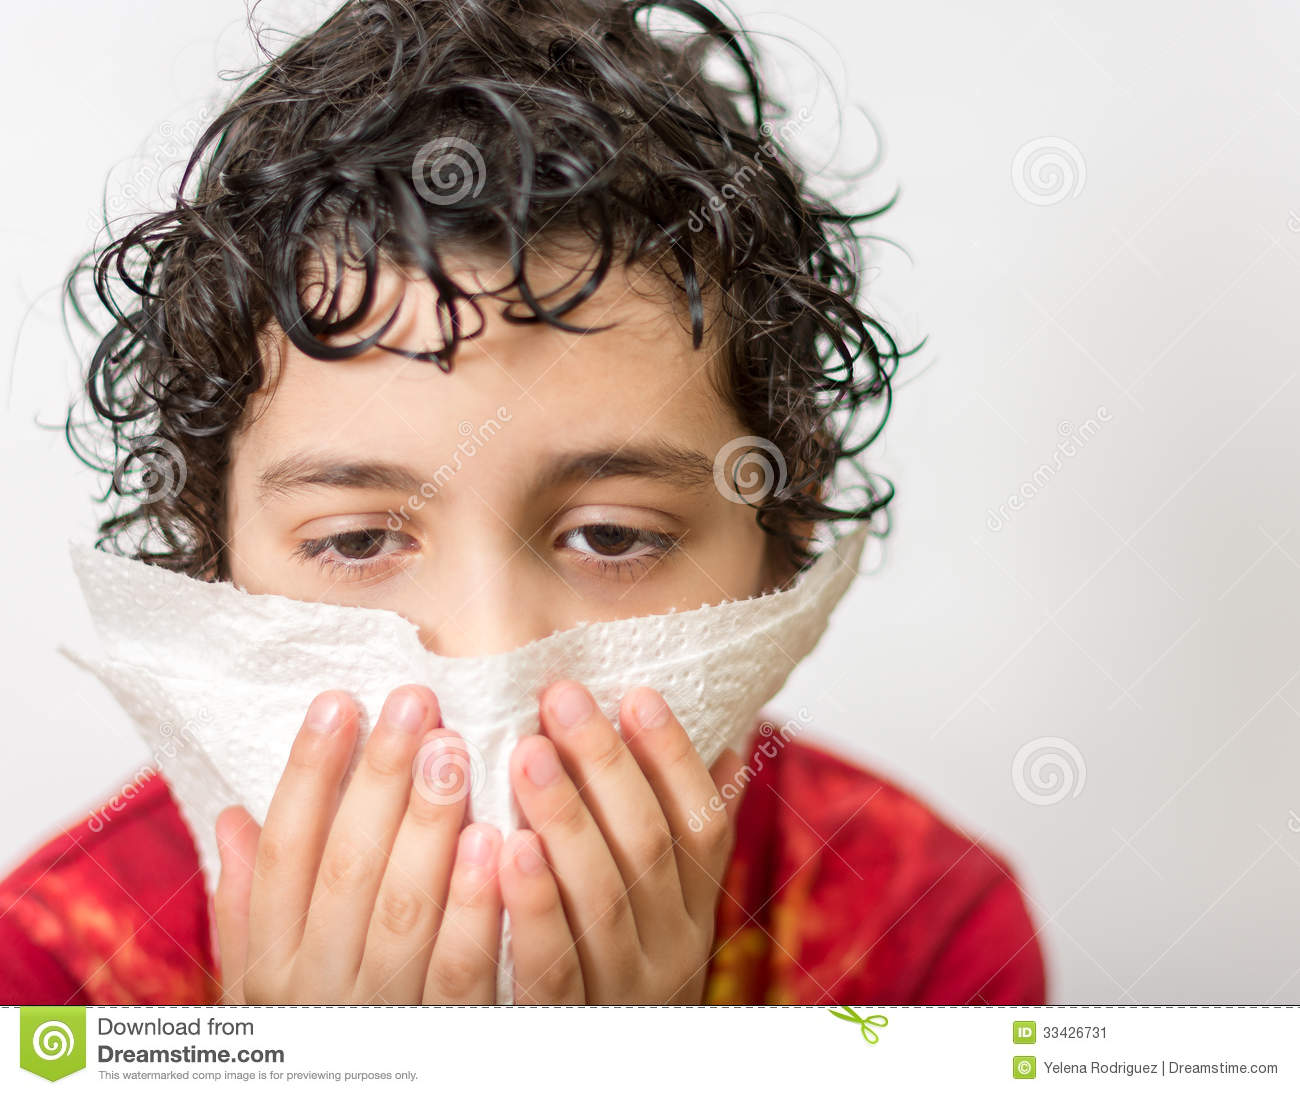 Hispanic Child Blowing His Nose Boy With A Runny Nose